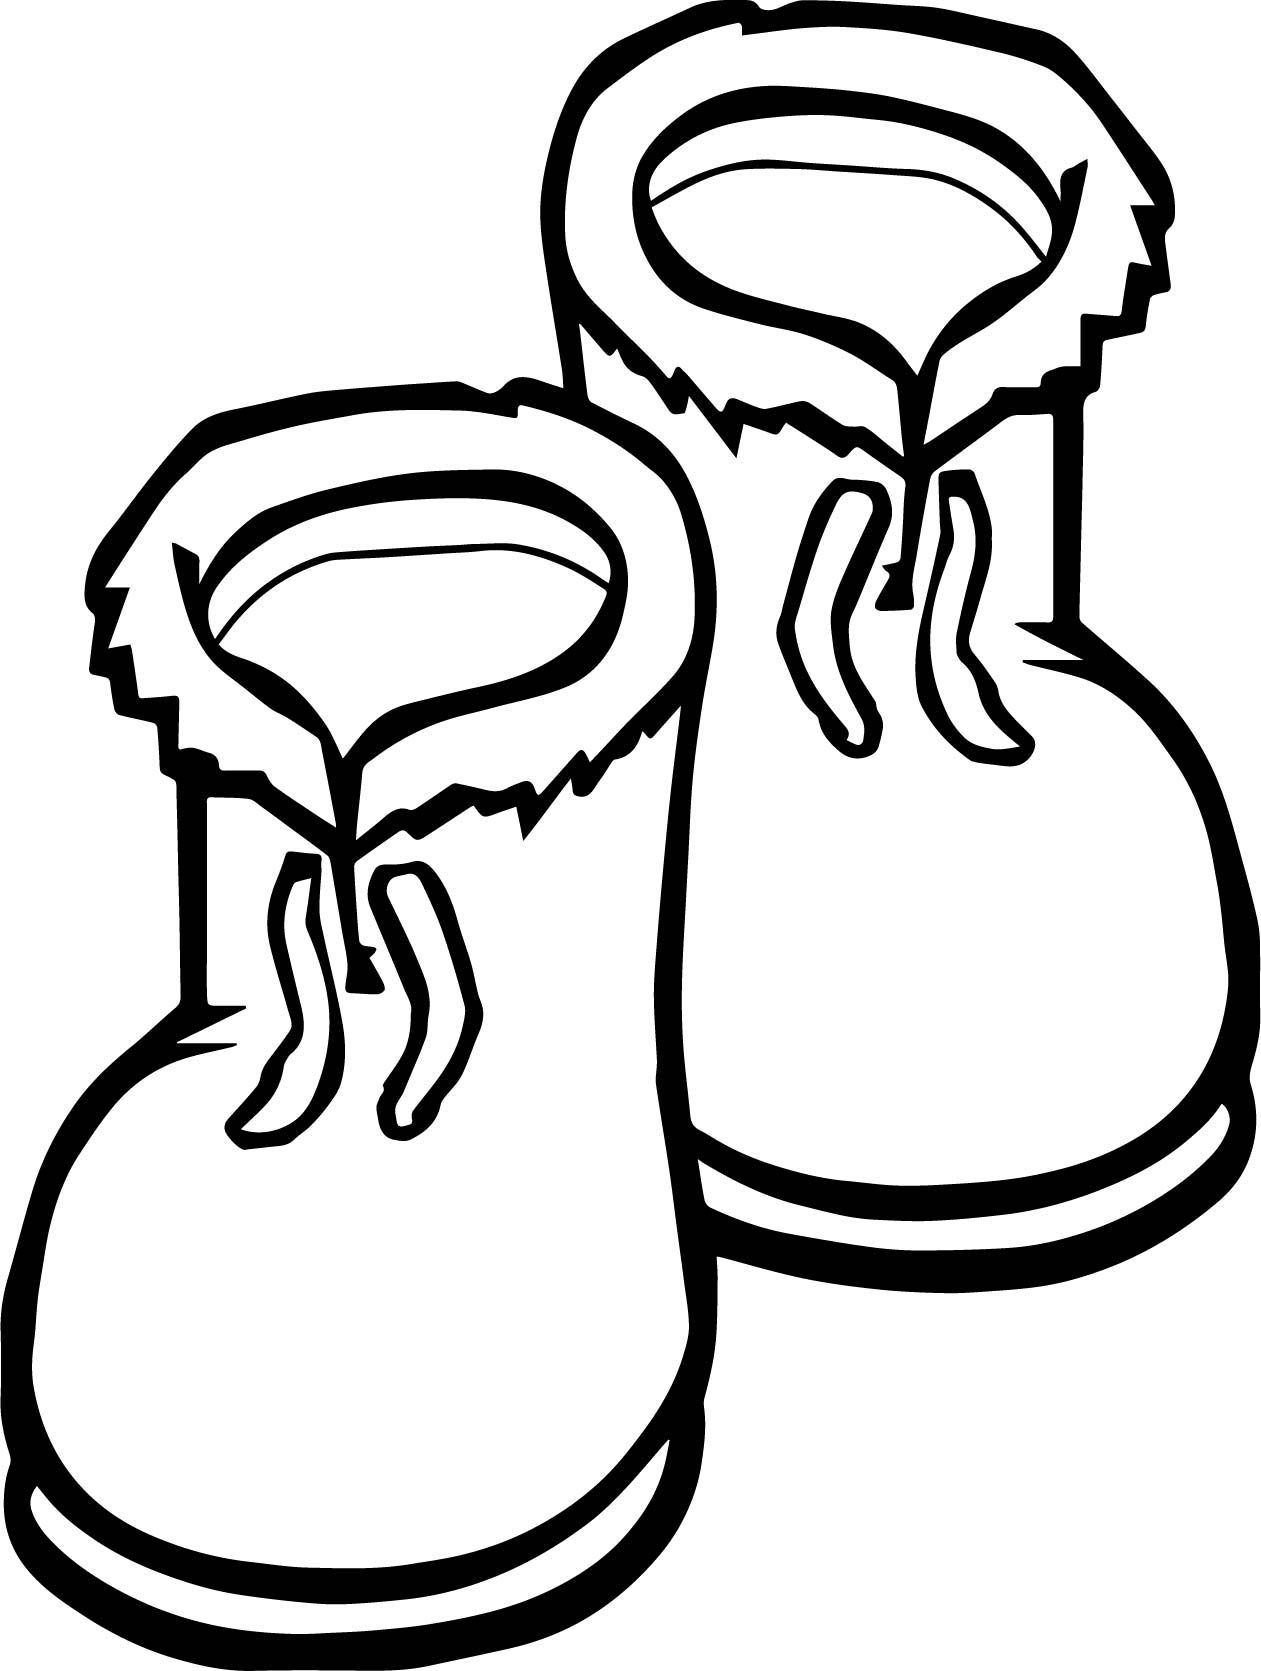 Winter Shoes Coloring Page Kıyafet Winter Shoes Coloring Pages